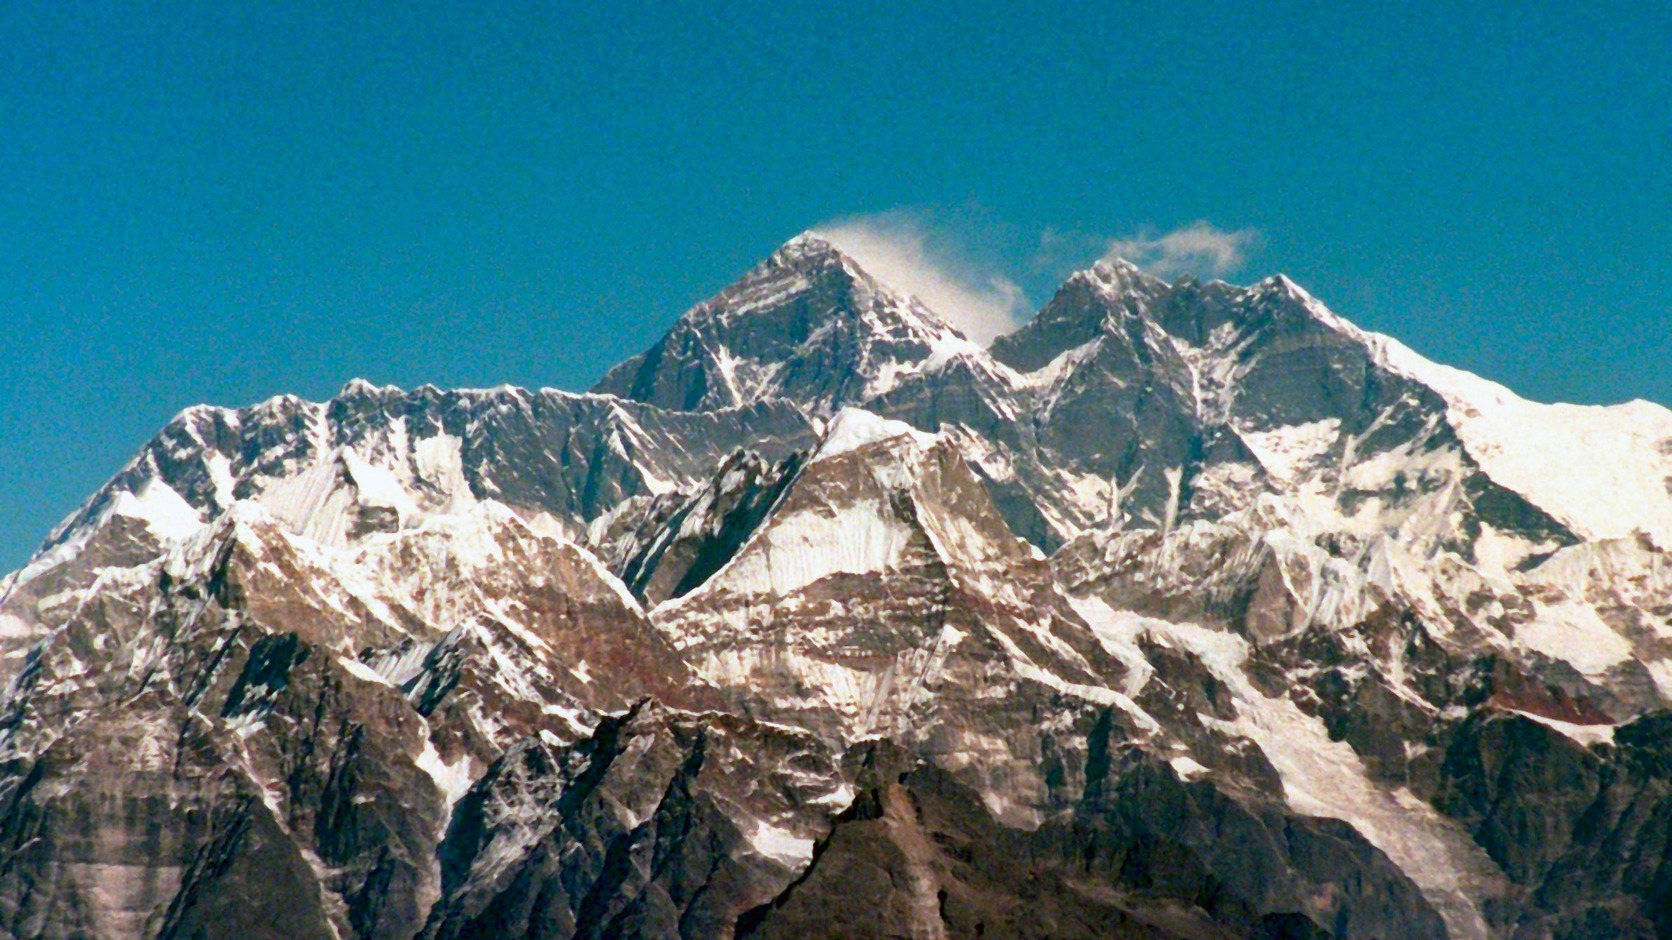 epa05981343 (FILE) - A file picture dated 29 November 1996 showing the Himalya range and Mount Everest, the highest mountain on earth (C) from an airplane in Nepal. Accoding to reports from 22 May 2017, the Hillary Step on Mount Everest collapsed. The 12-metres outcrop was the last obstacle on the way to Mount Everest's peak.  EPA/MARTIN ATHENSTAEDT  GERMANY OUT